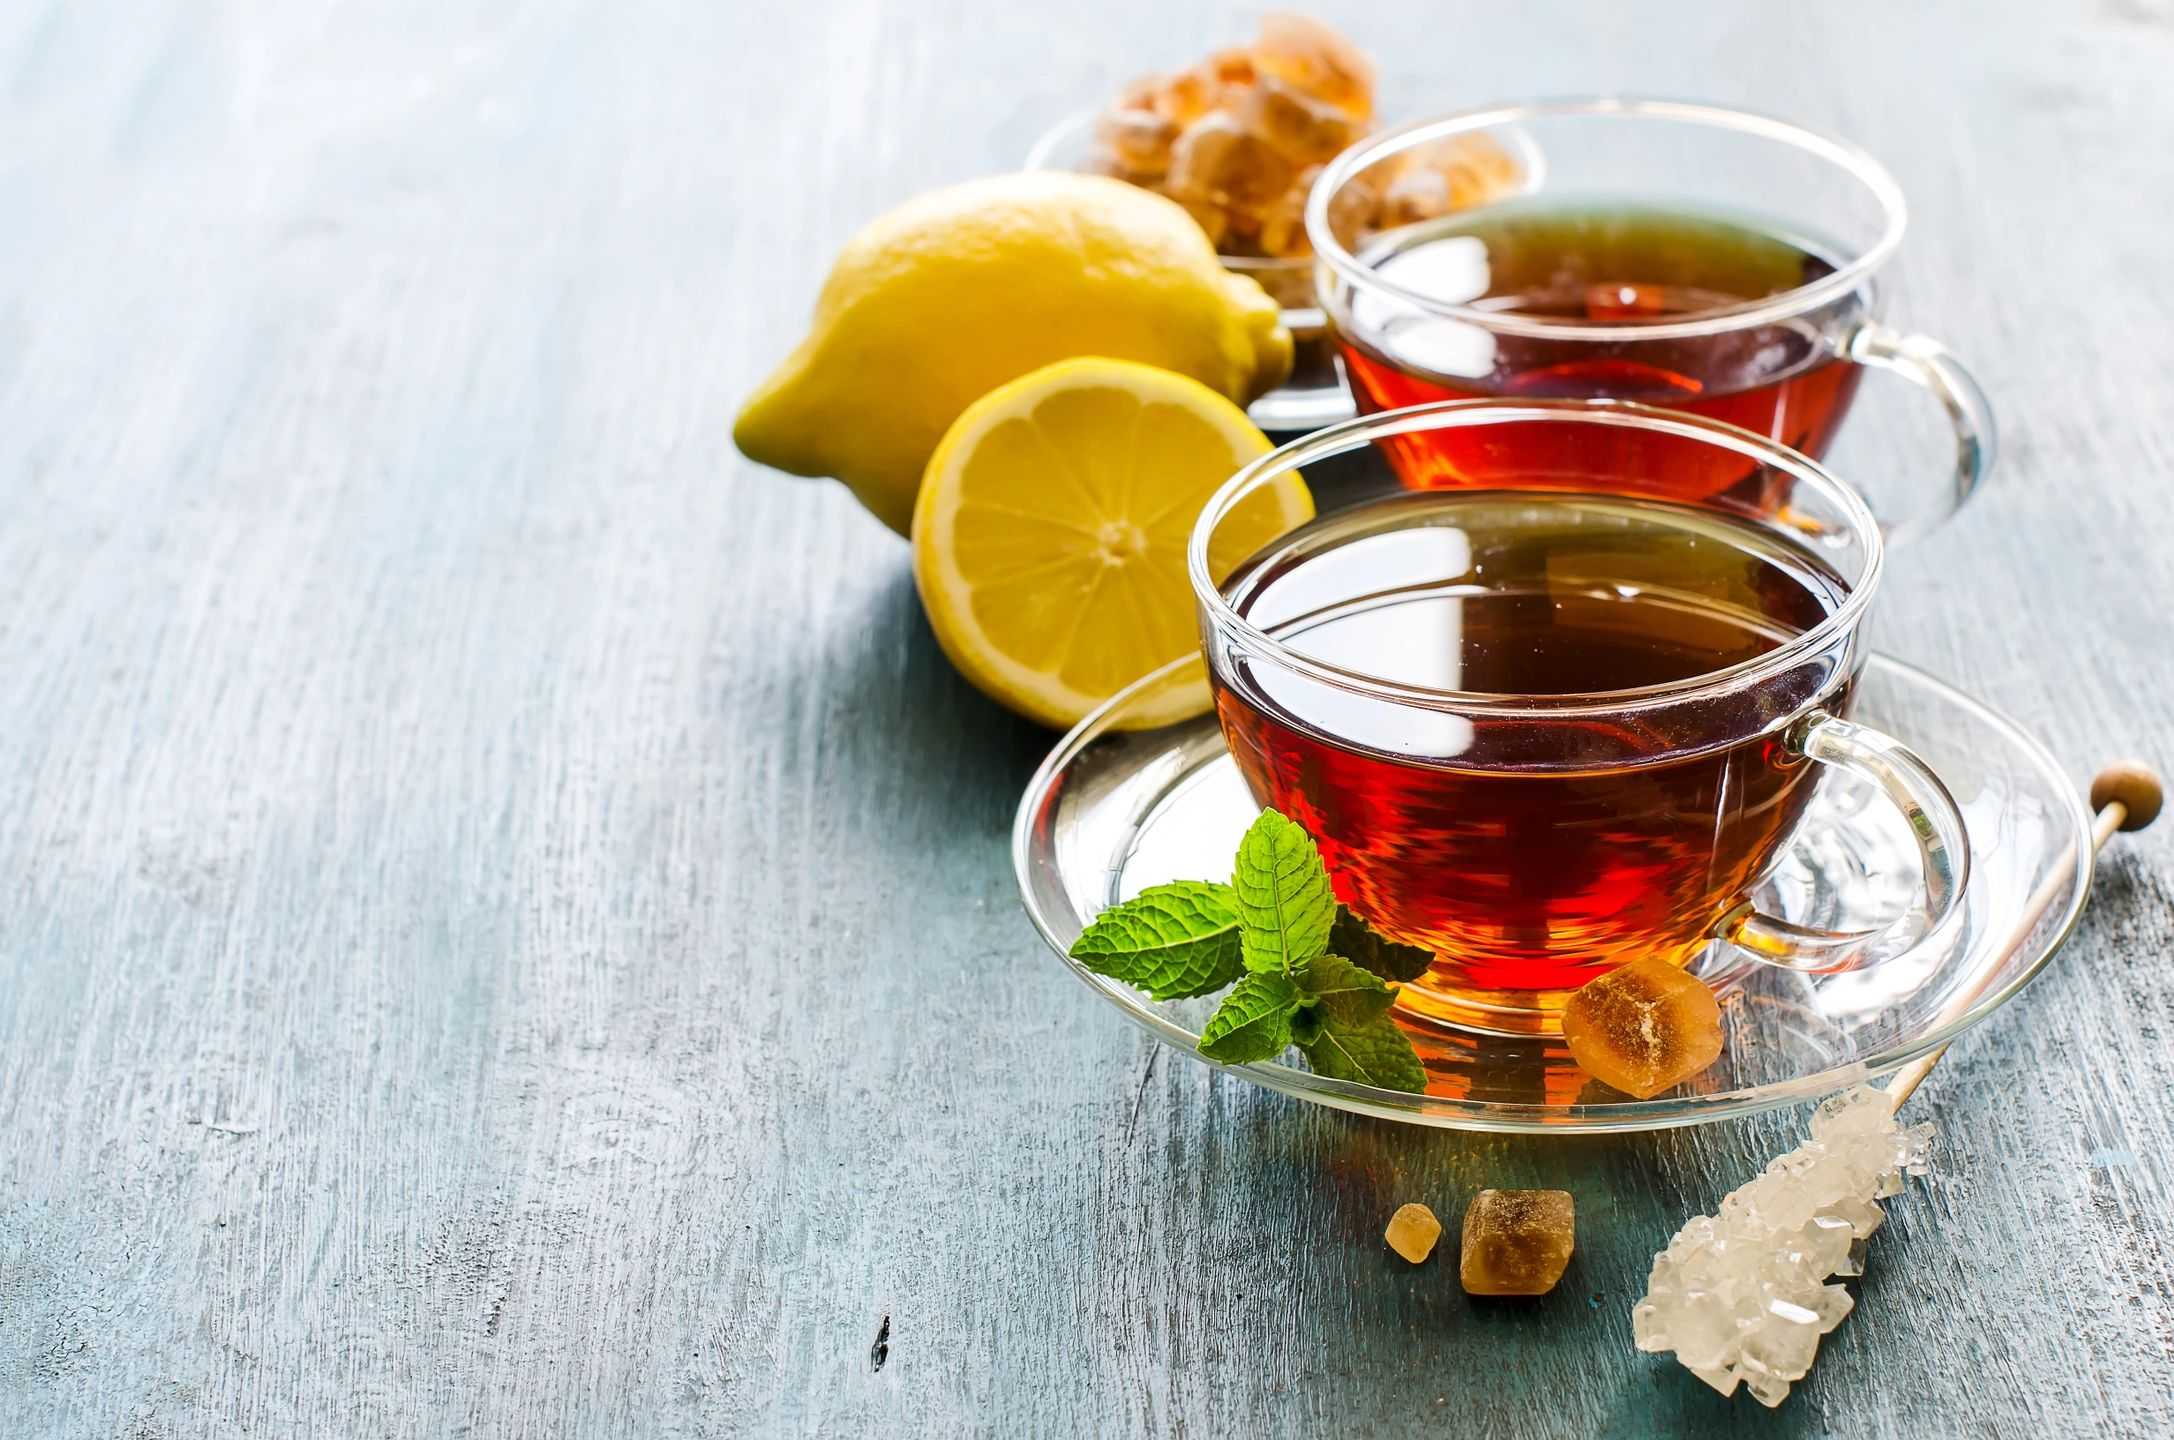 Green Tea Pumps the Brakes on Accelerated Aging by Amanda Williams, MPH